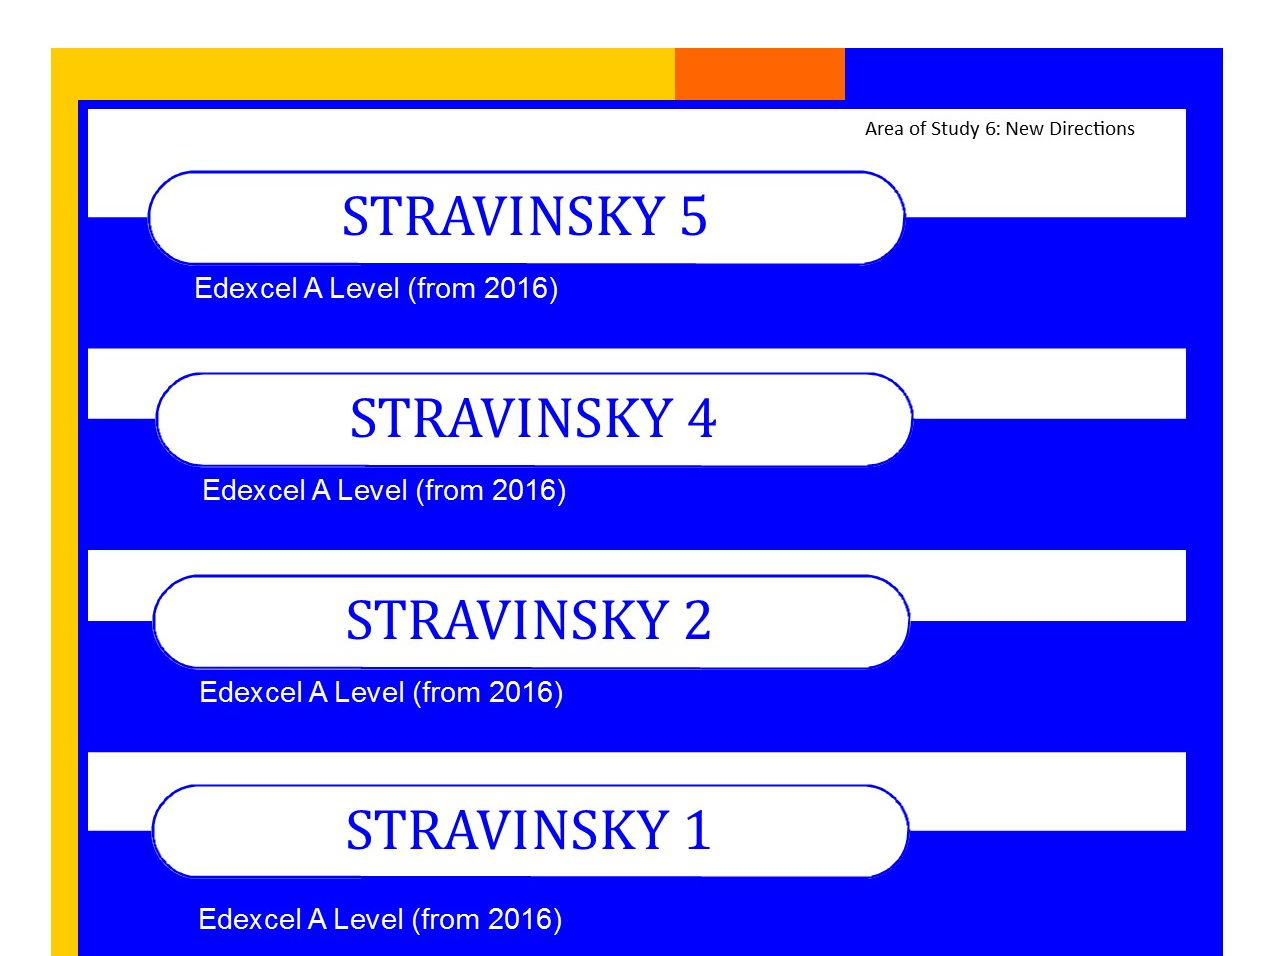 Bundle of Edexcel Music A level (from 2016) Stravinsky worksheets 1,2,4 and 5 PLUS Elements of Music summary sheets.